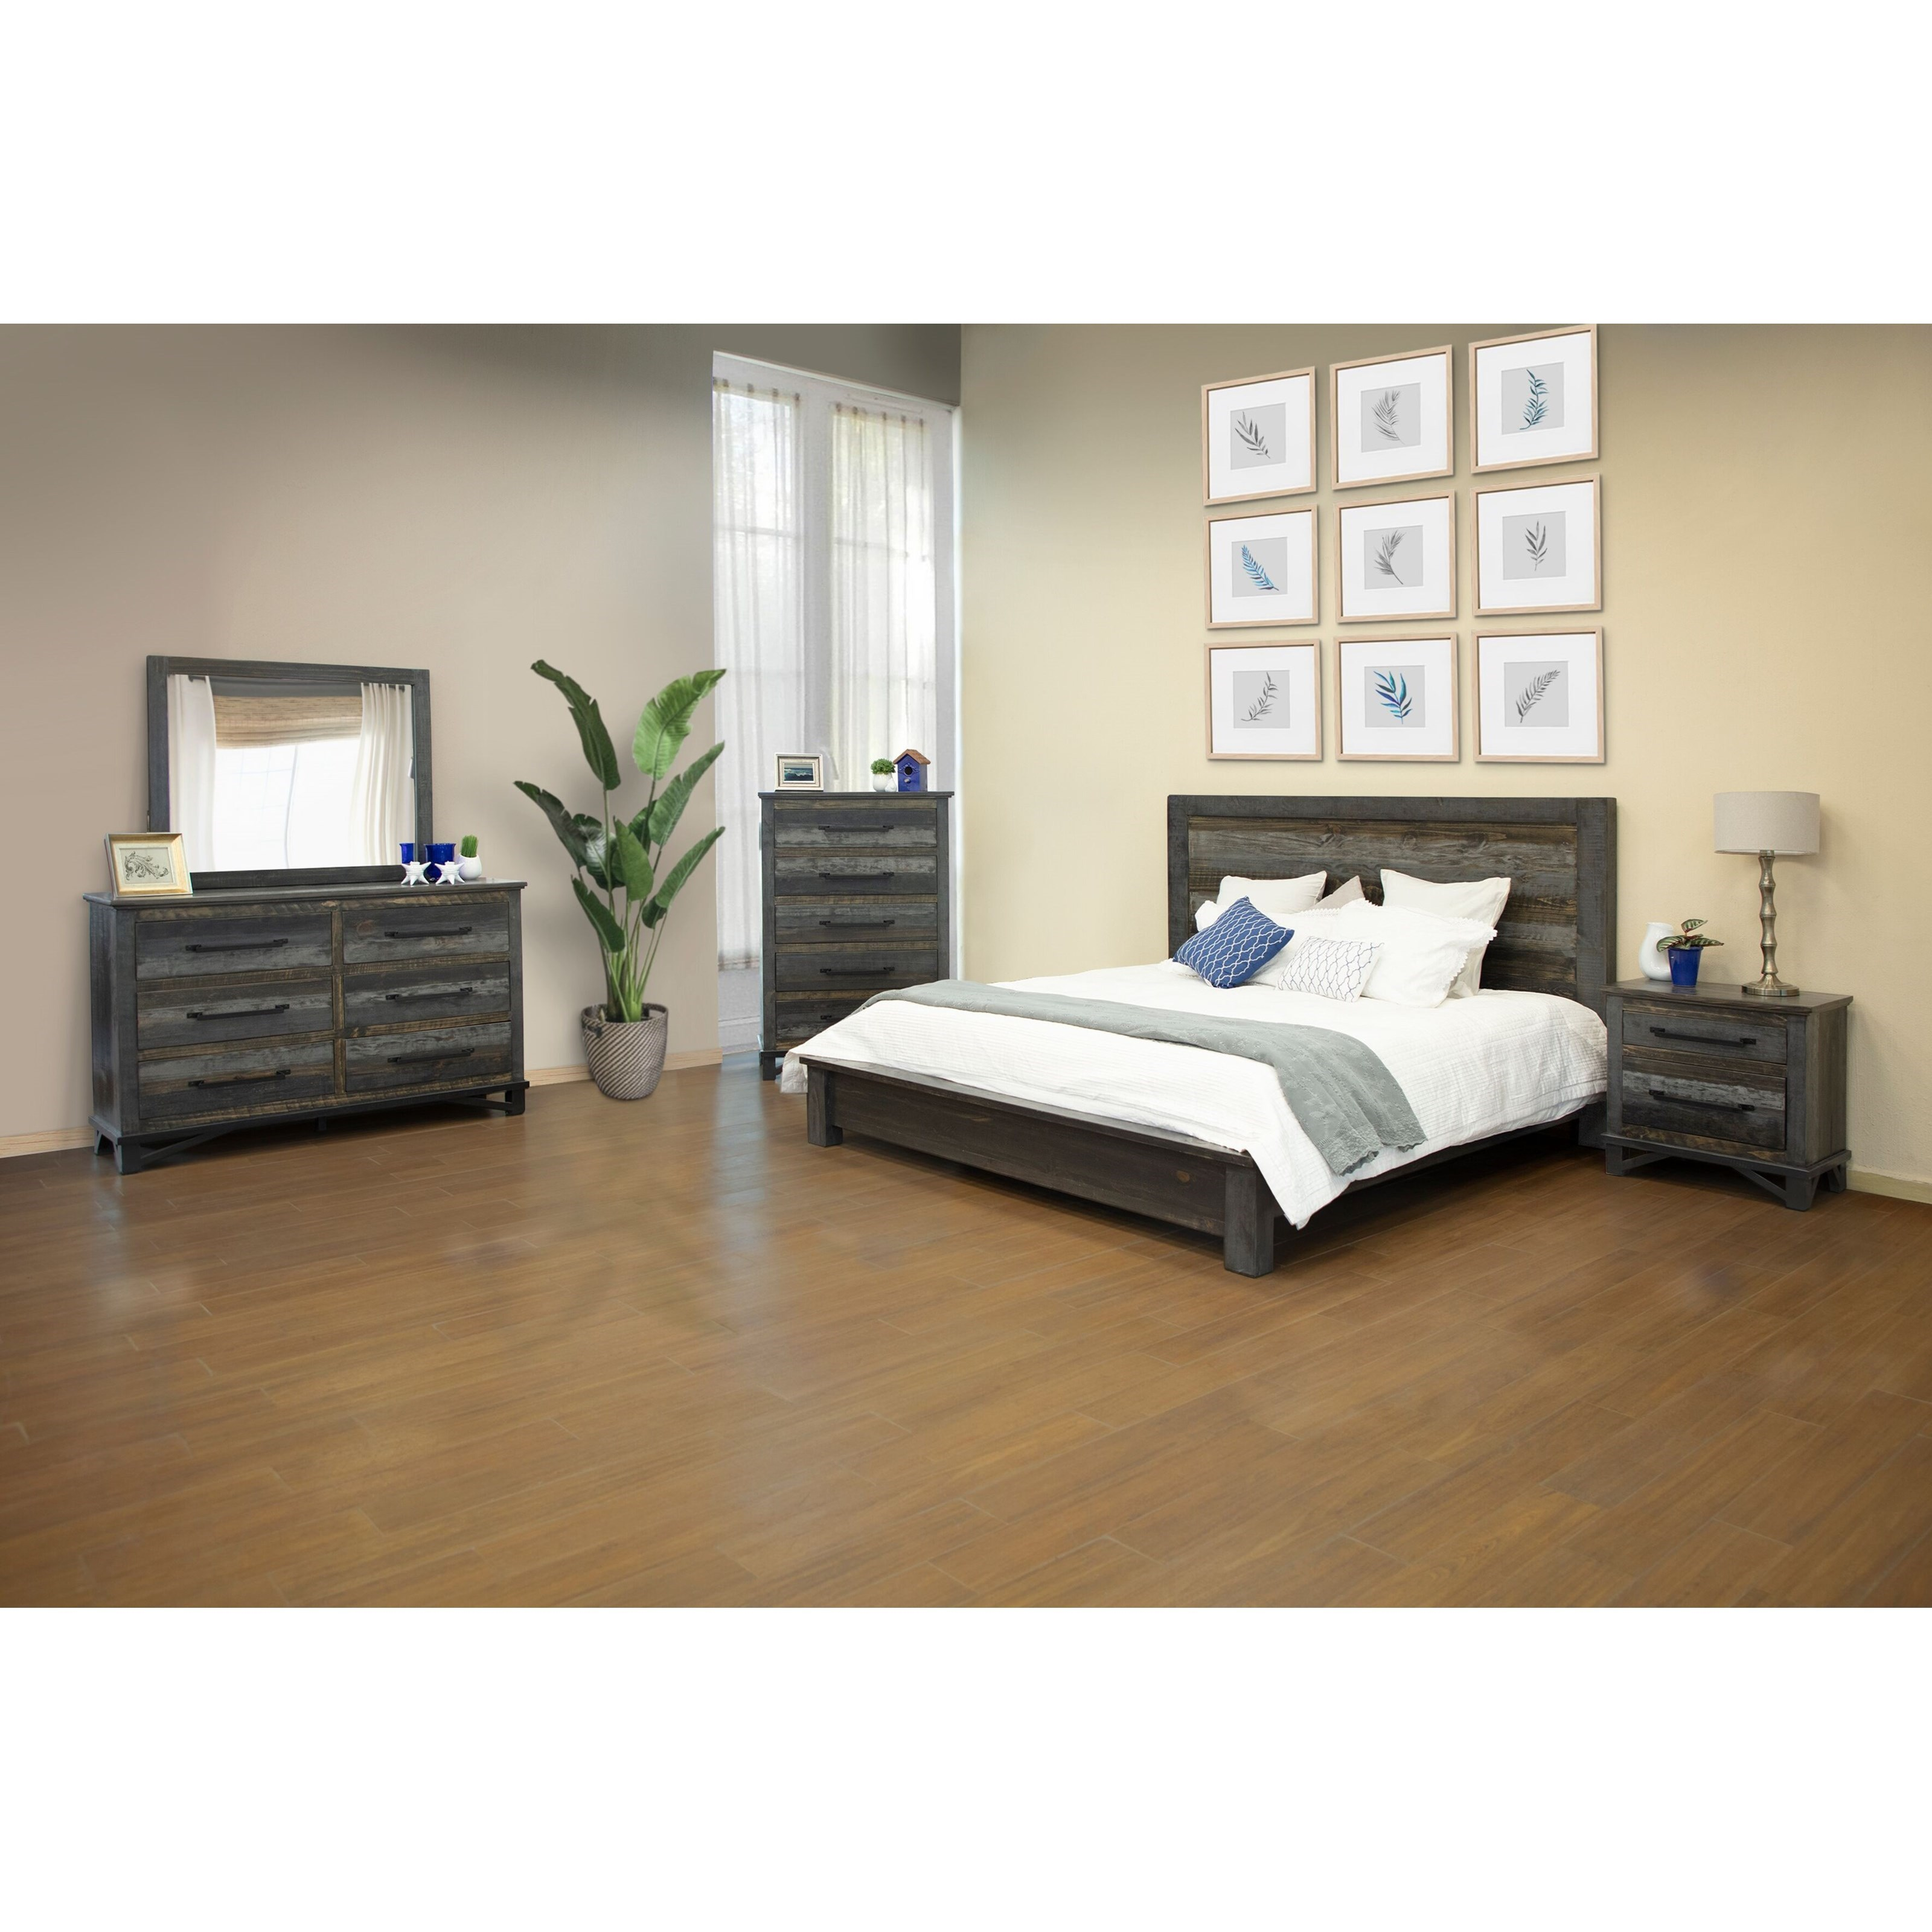 Loft California King Bedroom Group by International Furniture Direct at Sparks HomeStore